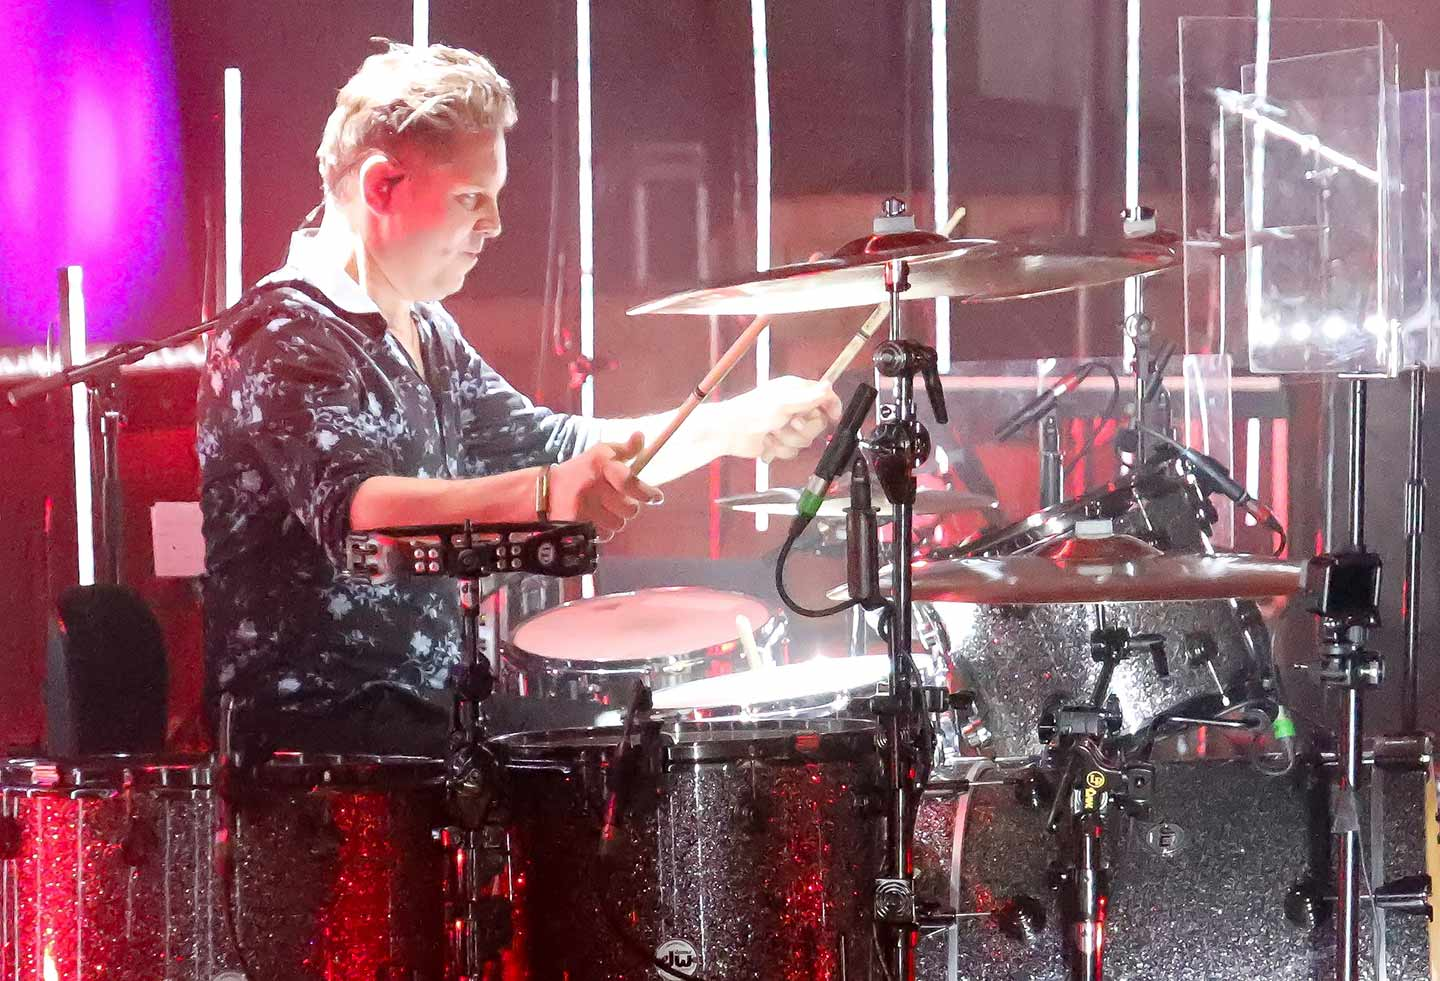 Snow Patrol's Johnny Quinn on Drums with d:dicate 2011C mics